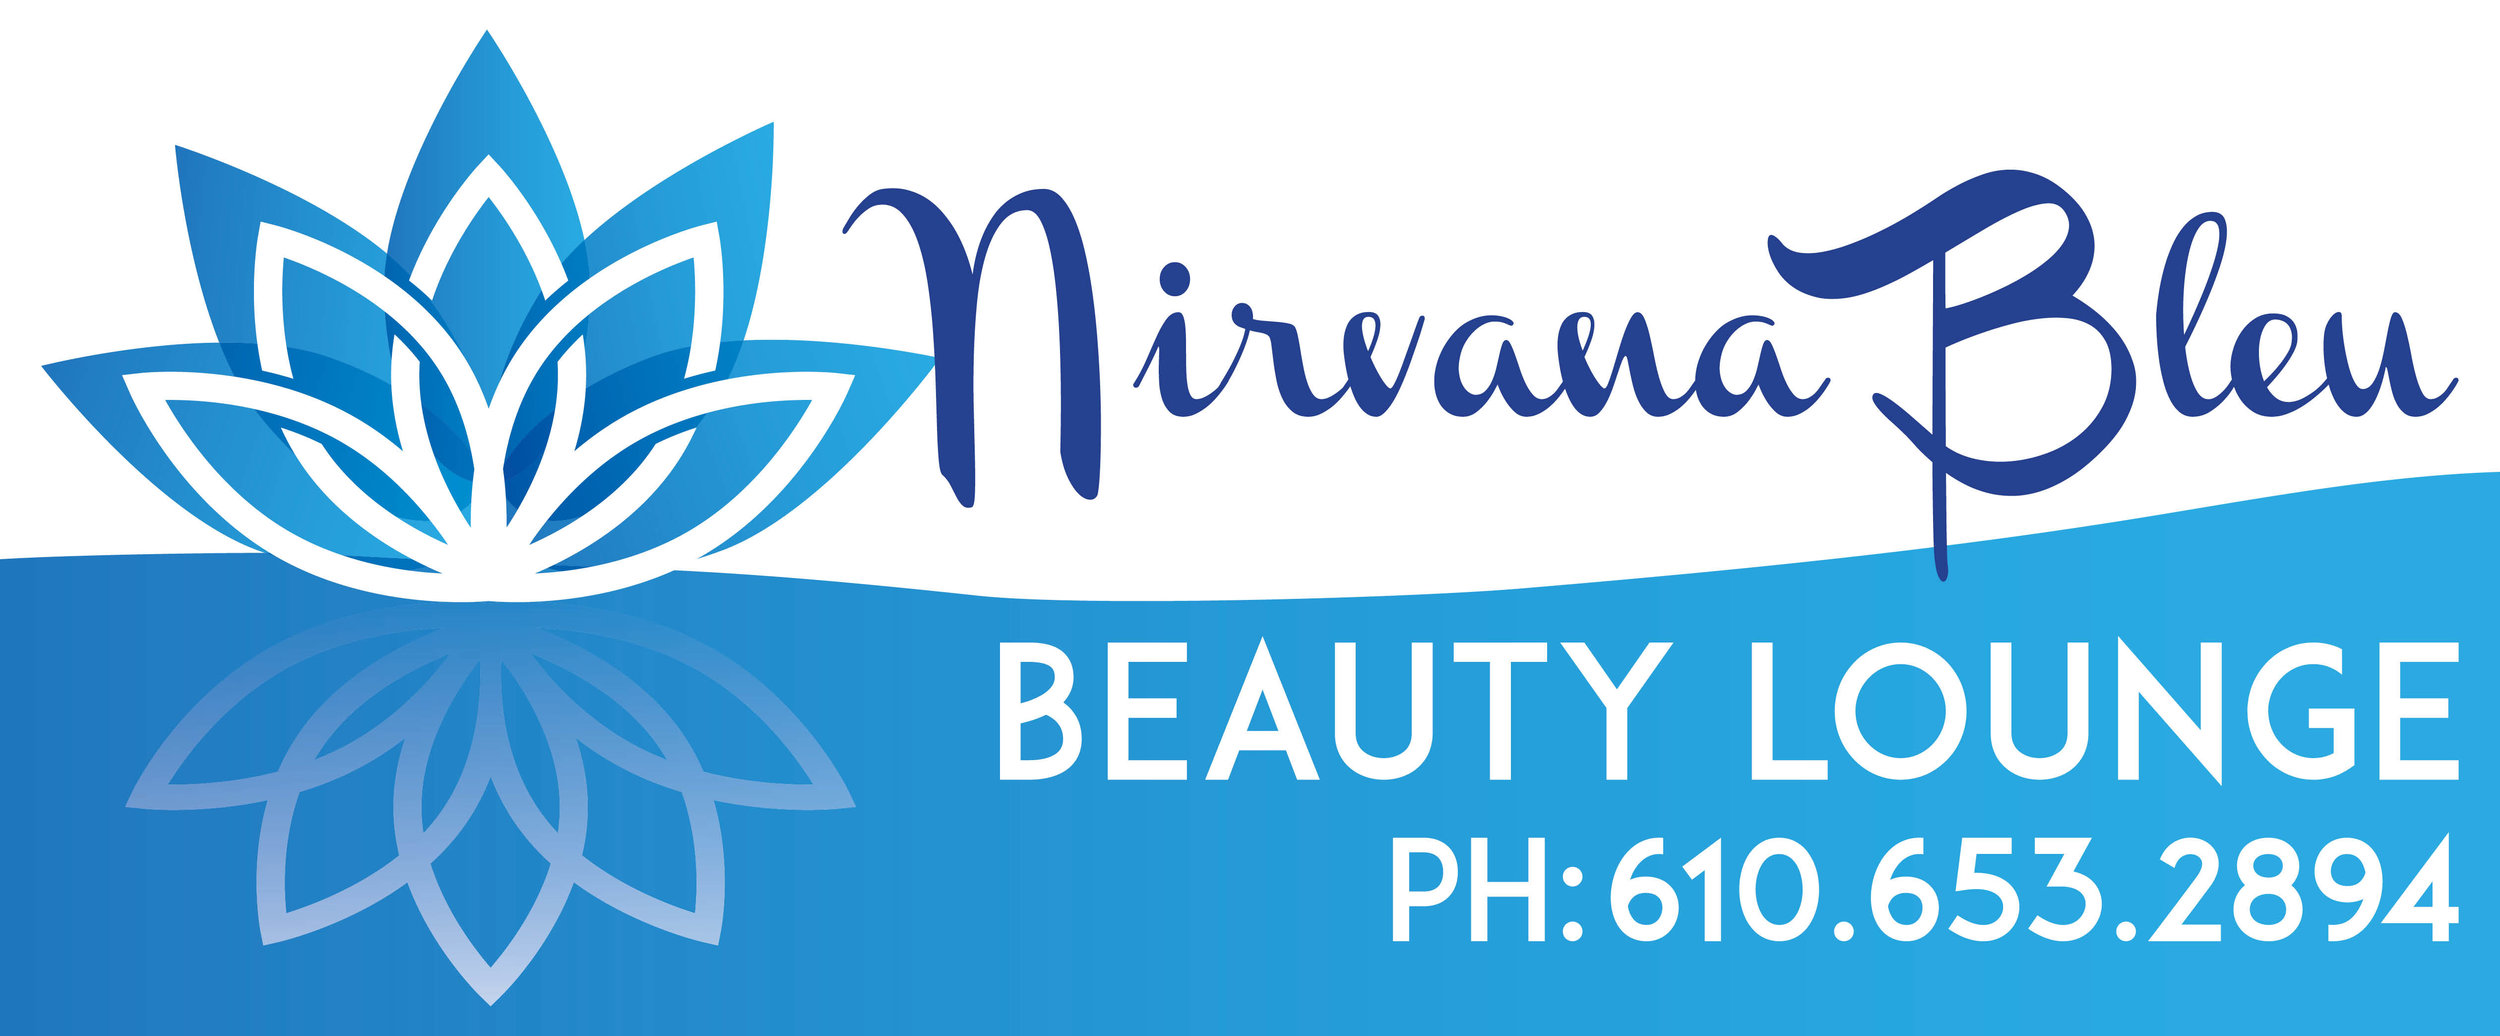 NB_Beauty Lounge_70x29 Banner.jpg